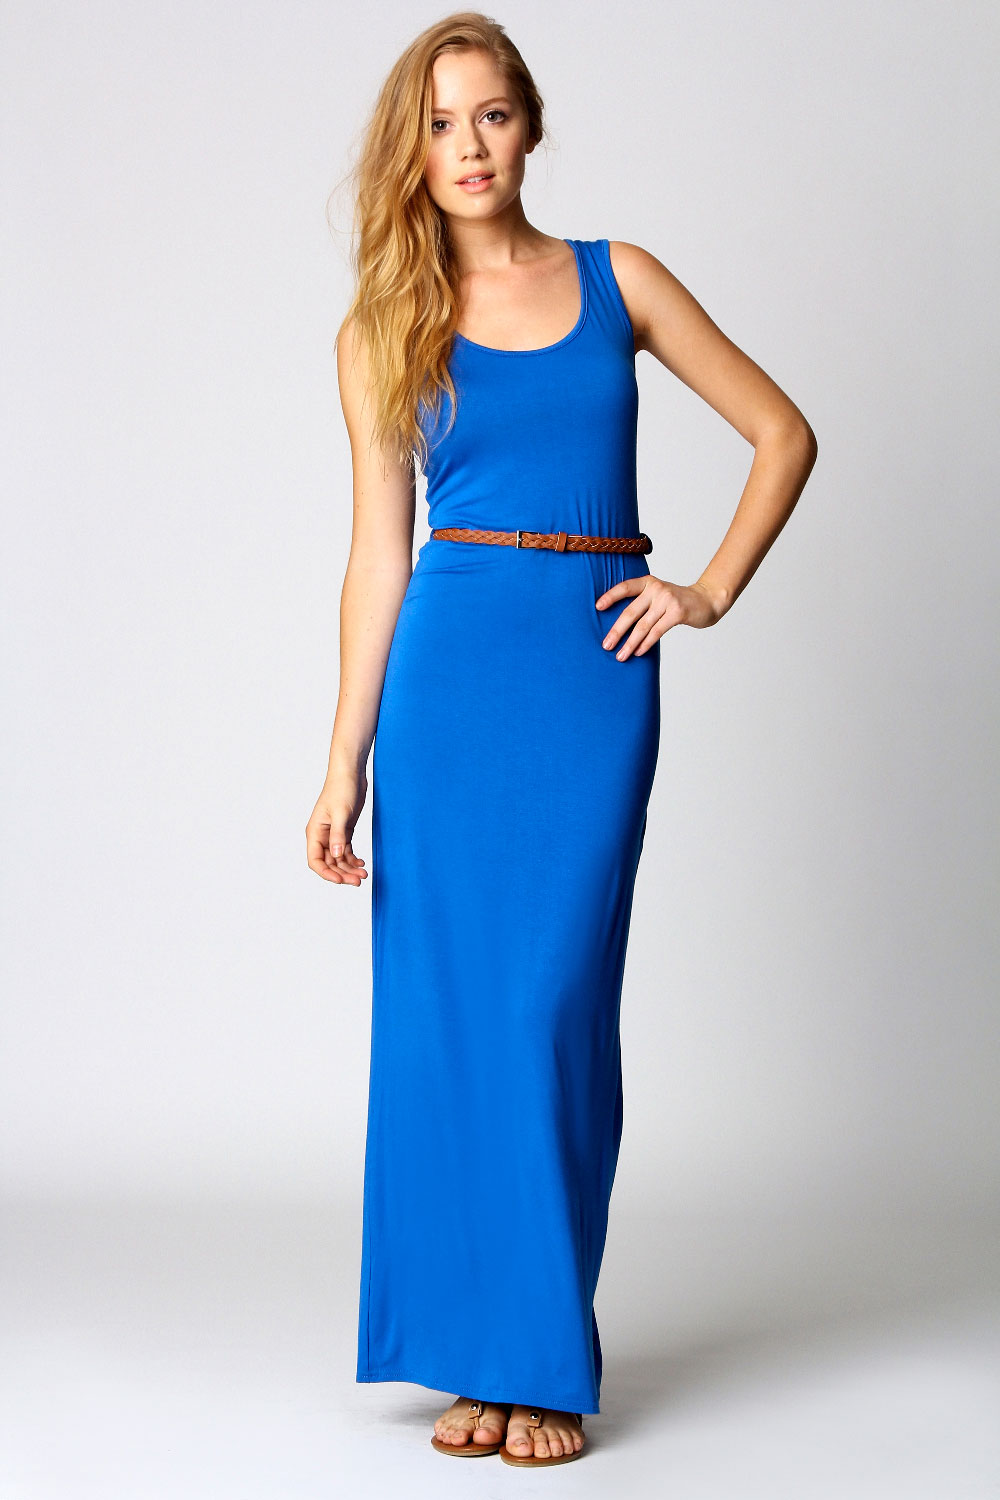 Boohoo-Womens-Ladies-Laura-Racer-Back-Maxi-Dress